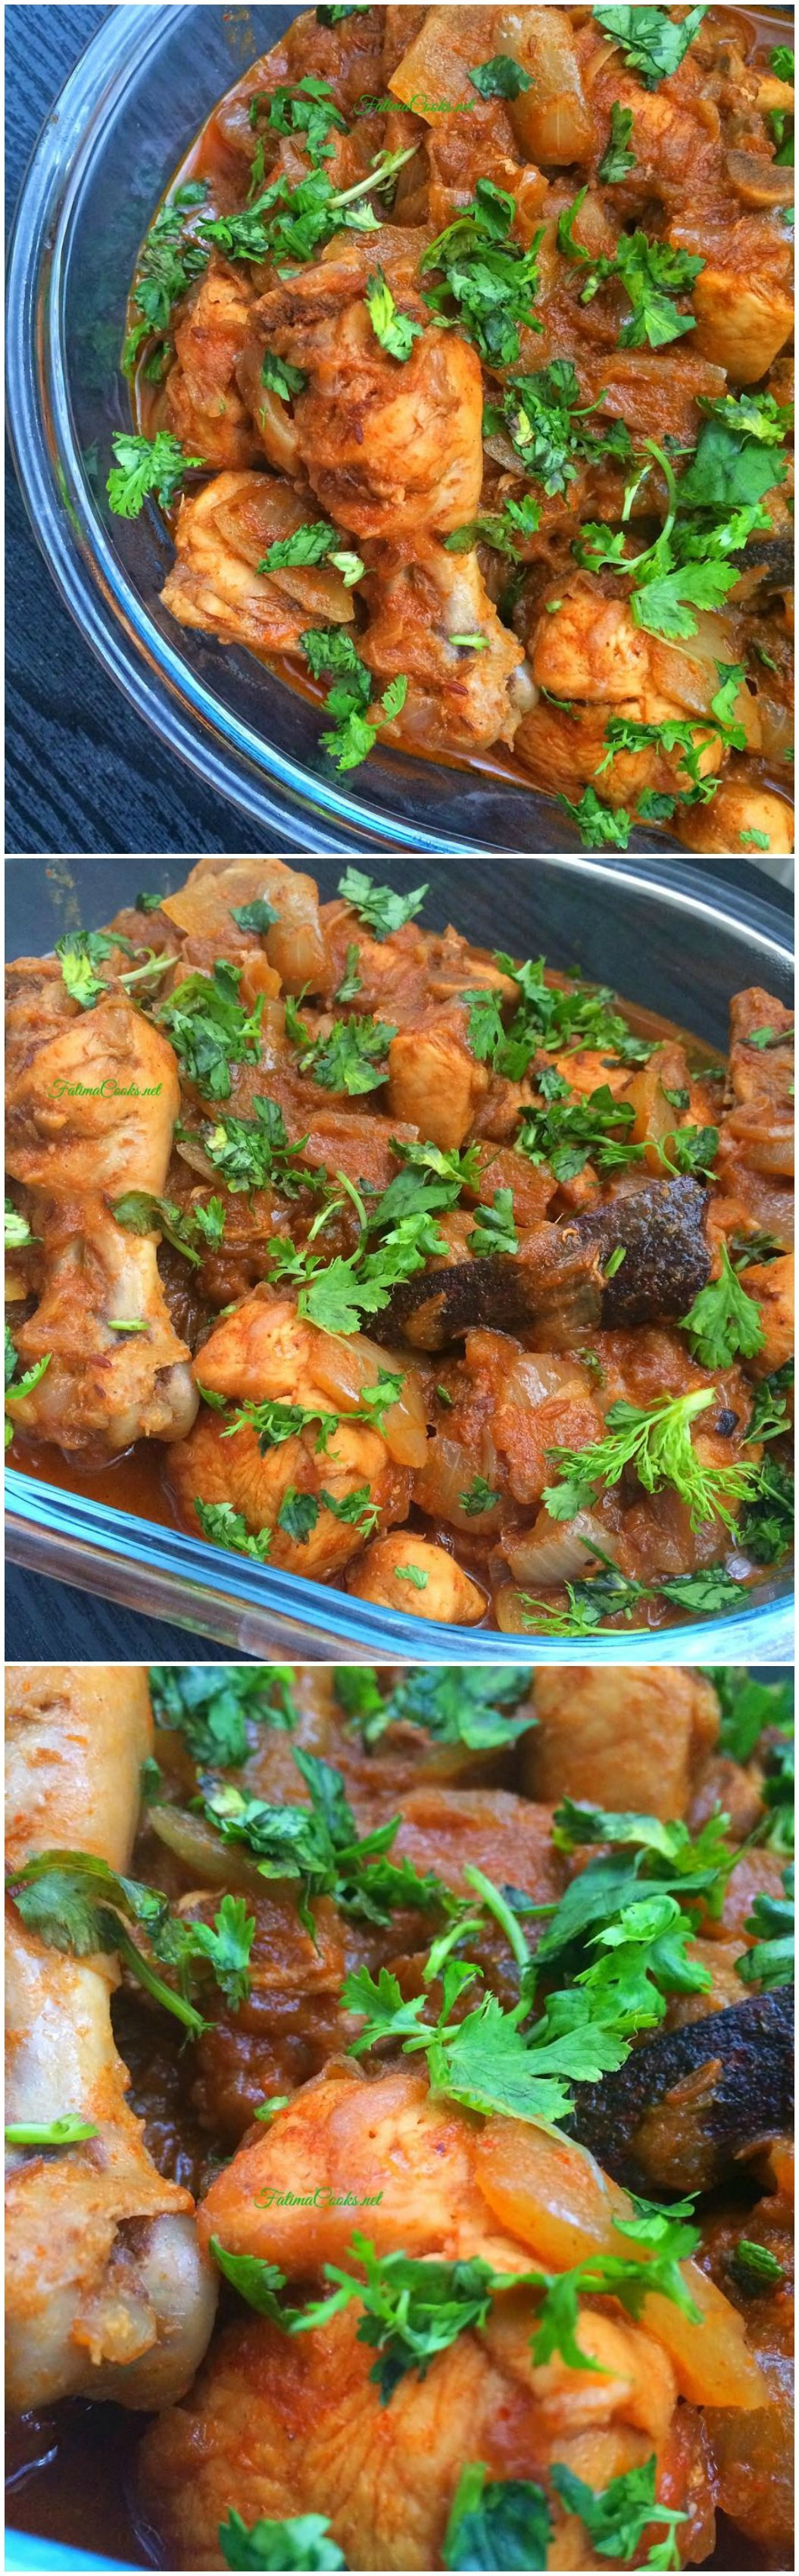 Curry Chicken With Onion  Chicken Dopiaza Chicken Curry With ions Fatima Cooks